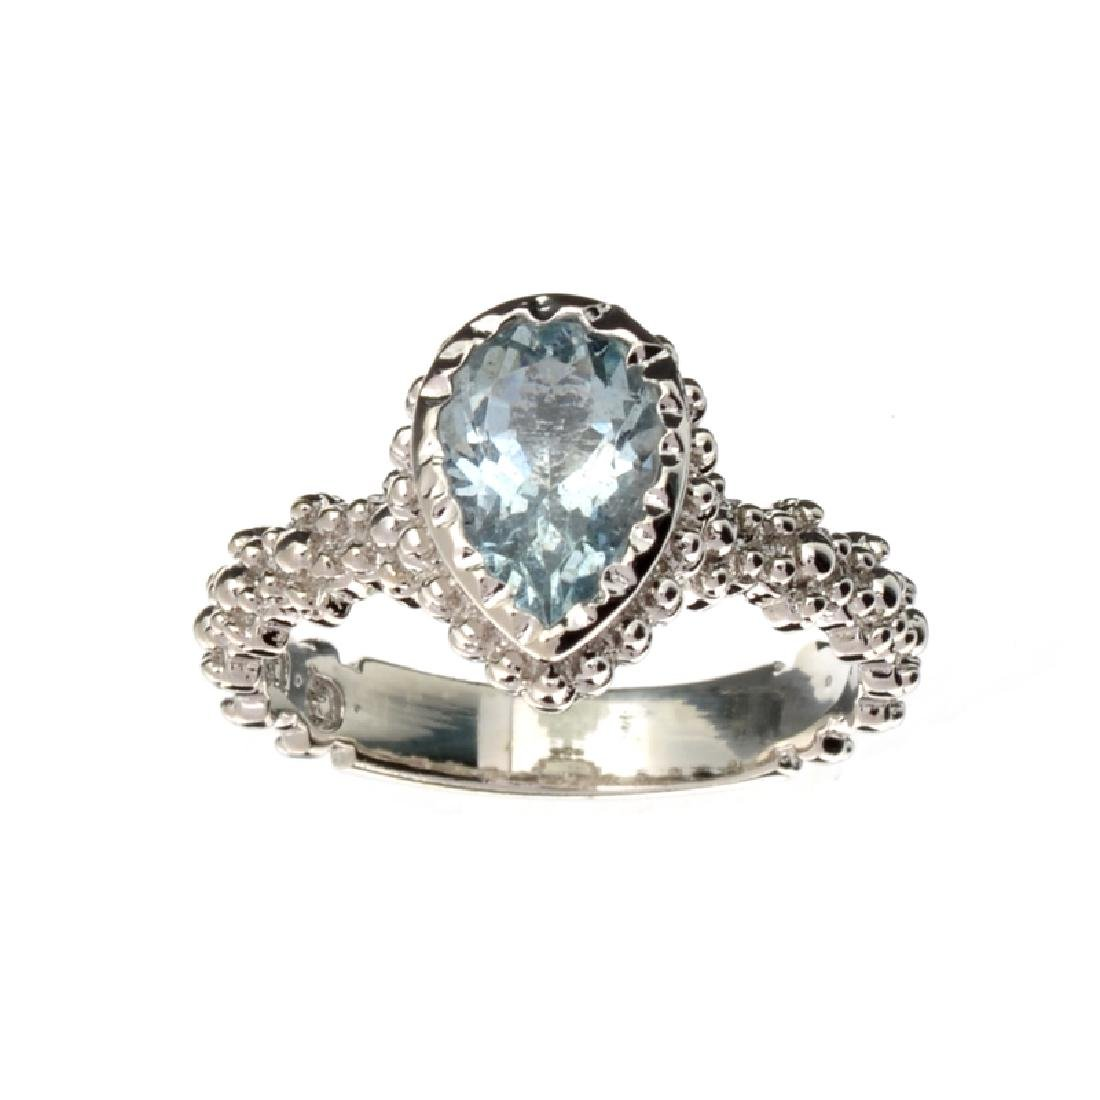 APP: 0.8k Fine Jewelry 1.50CT Pear Cut Aquamarine And